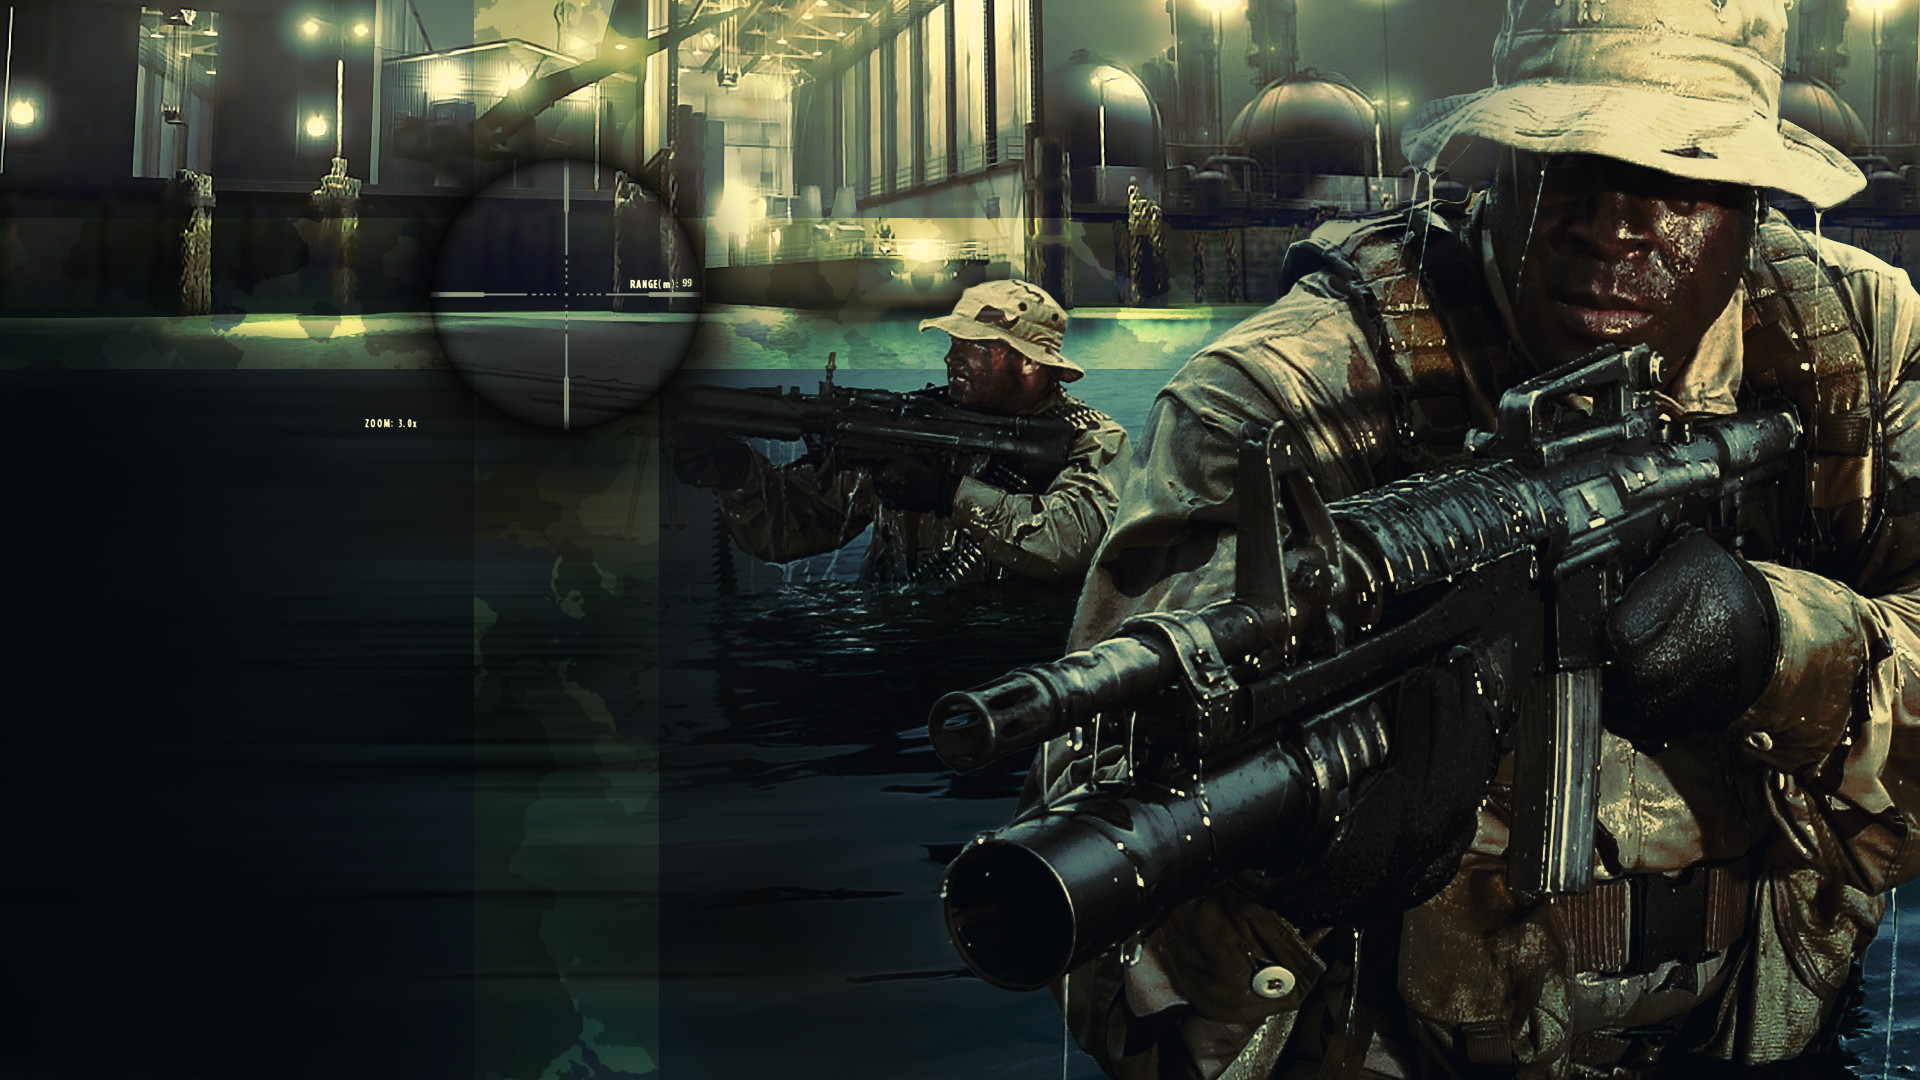 1920x1080 SOCOM 2 Bravo Wallpaper – More Navy SEALs close-ups including in .